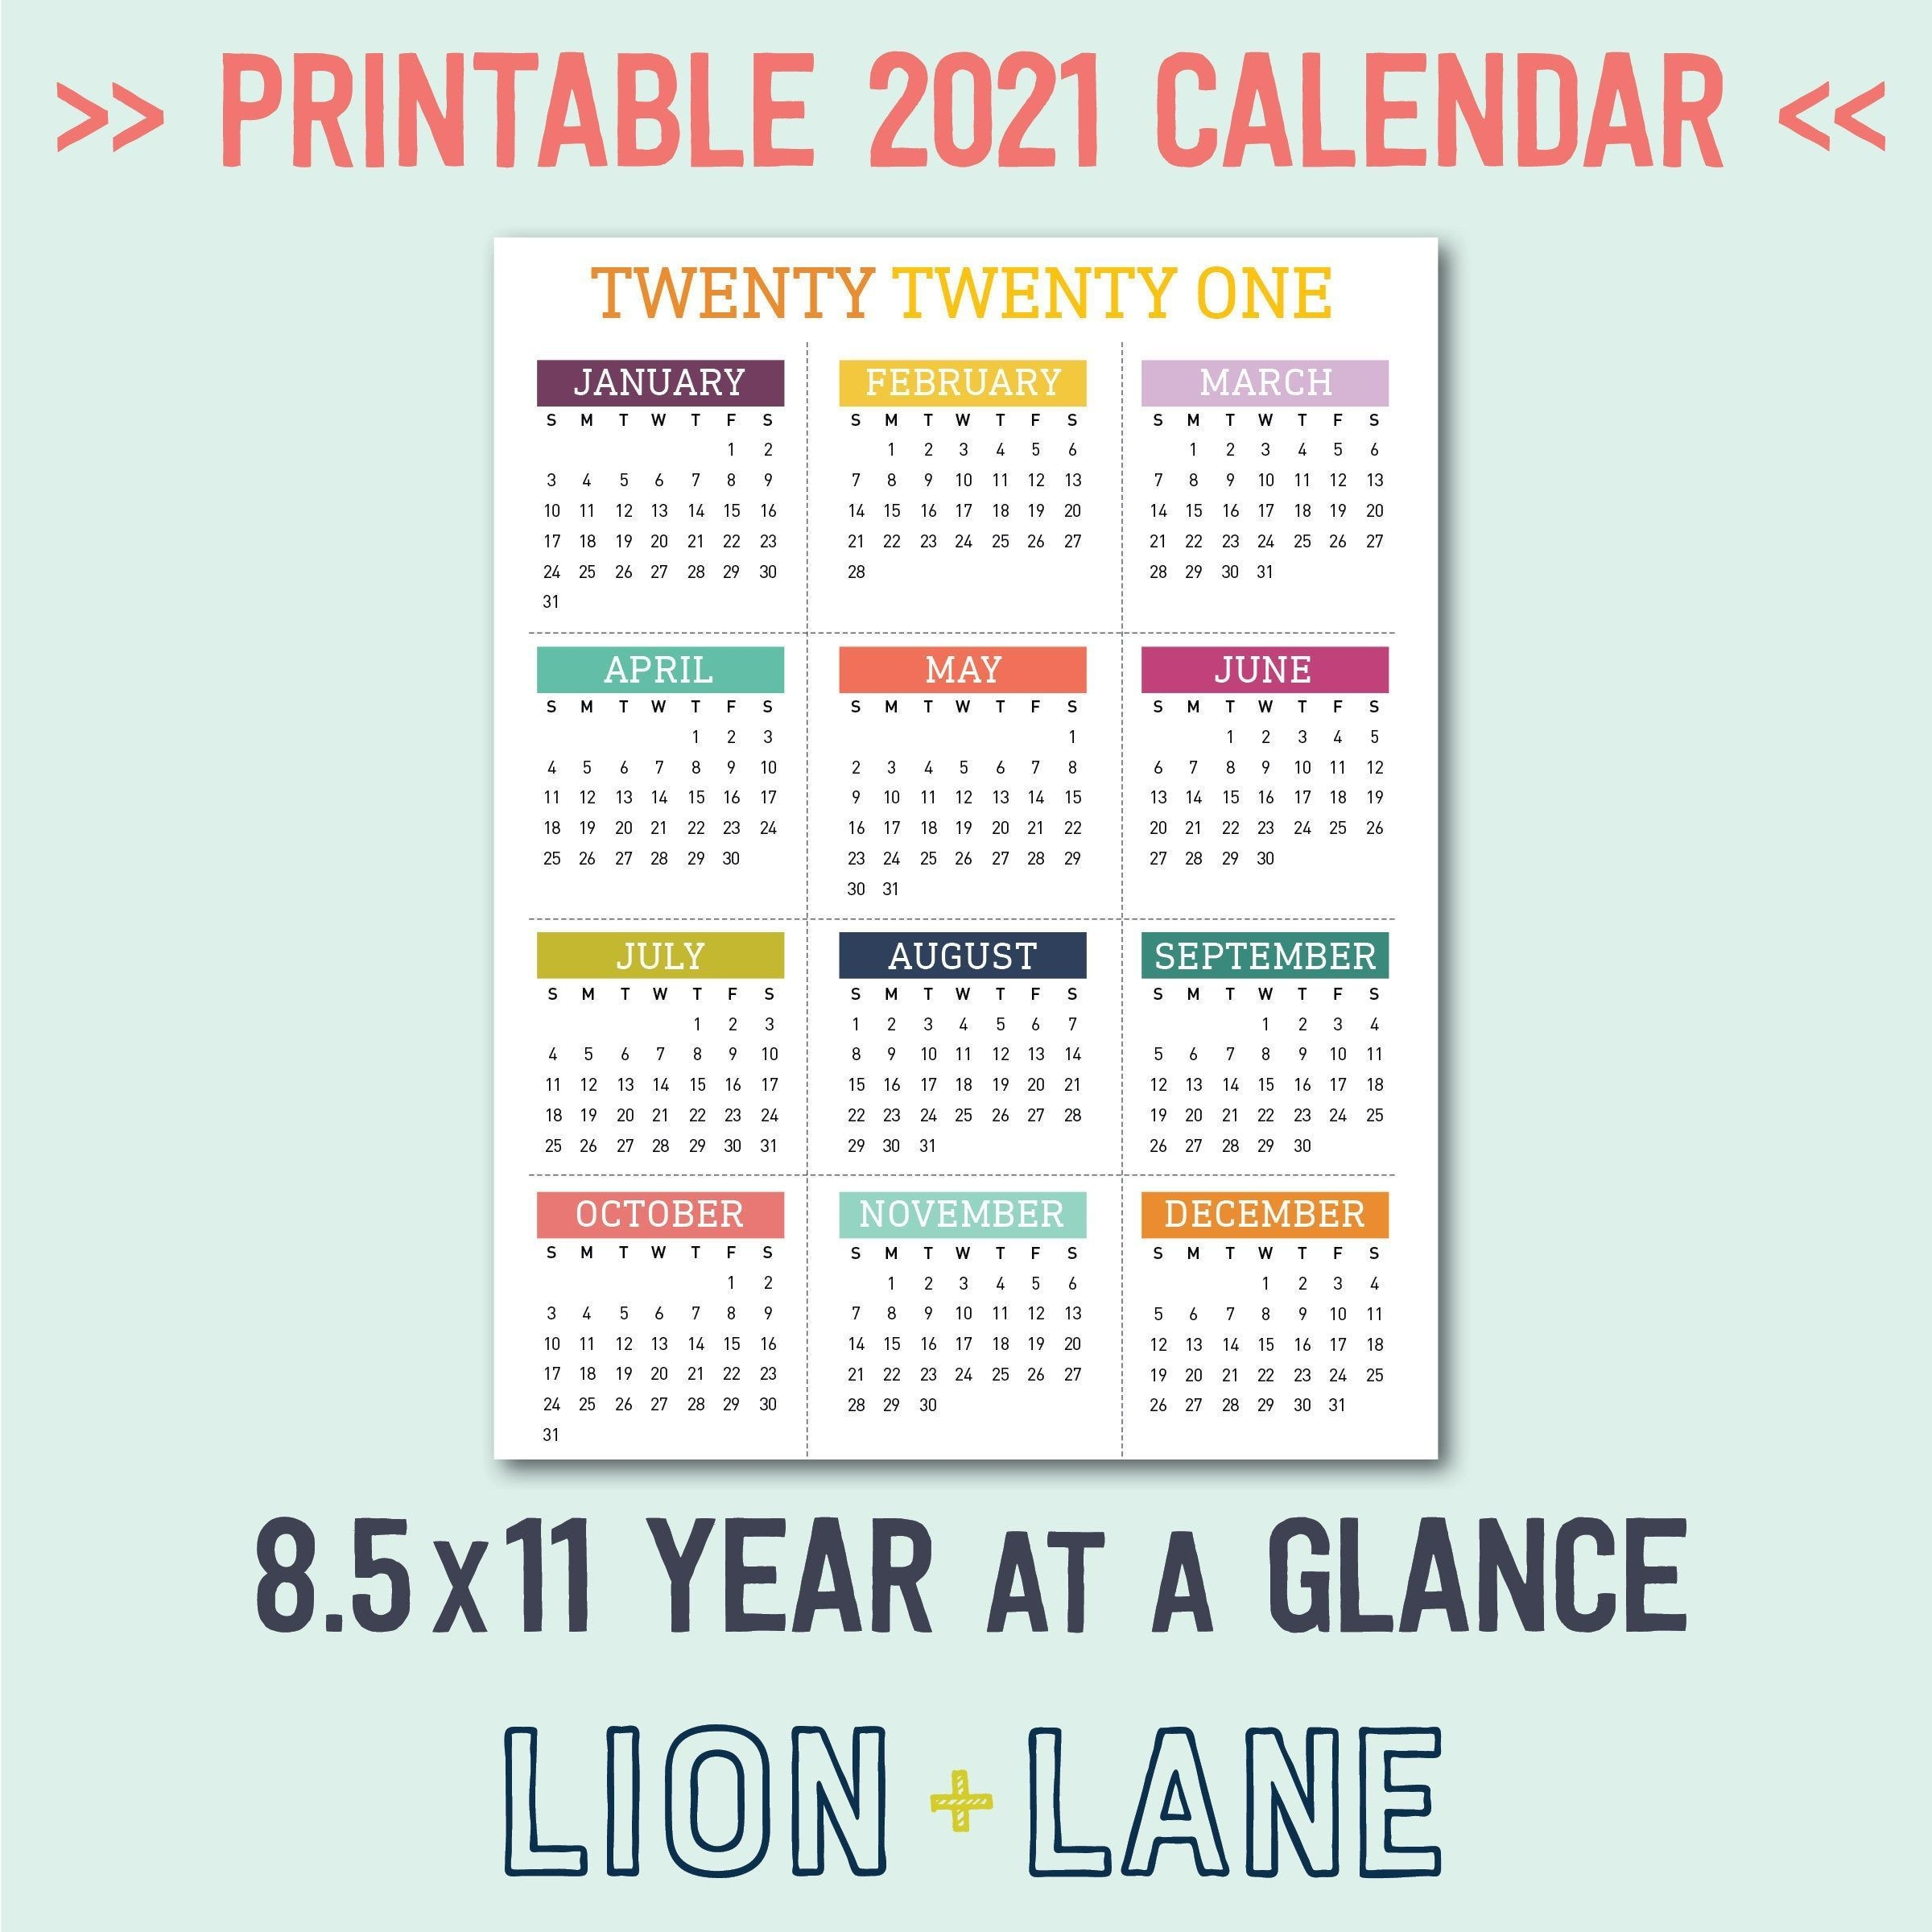 2021 Printable Calendar Year At A Glance 8.5X11 Letter